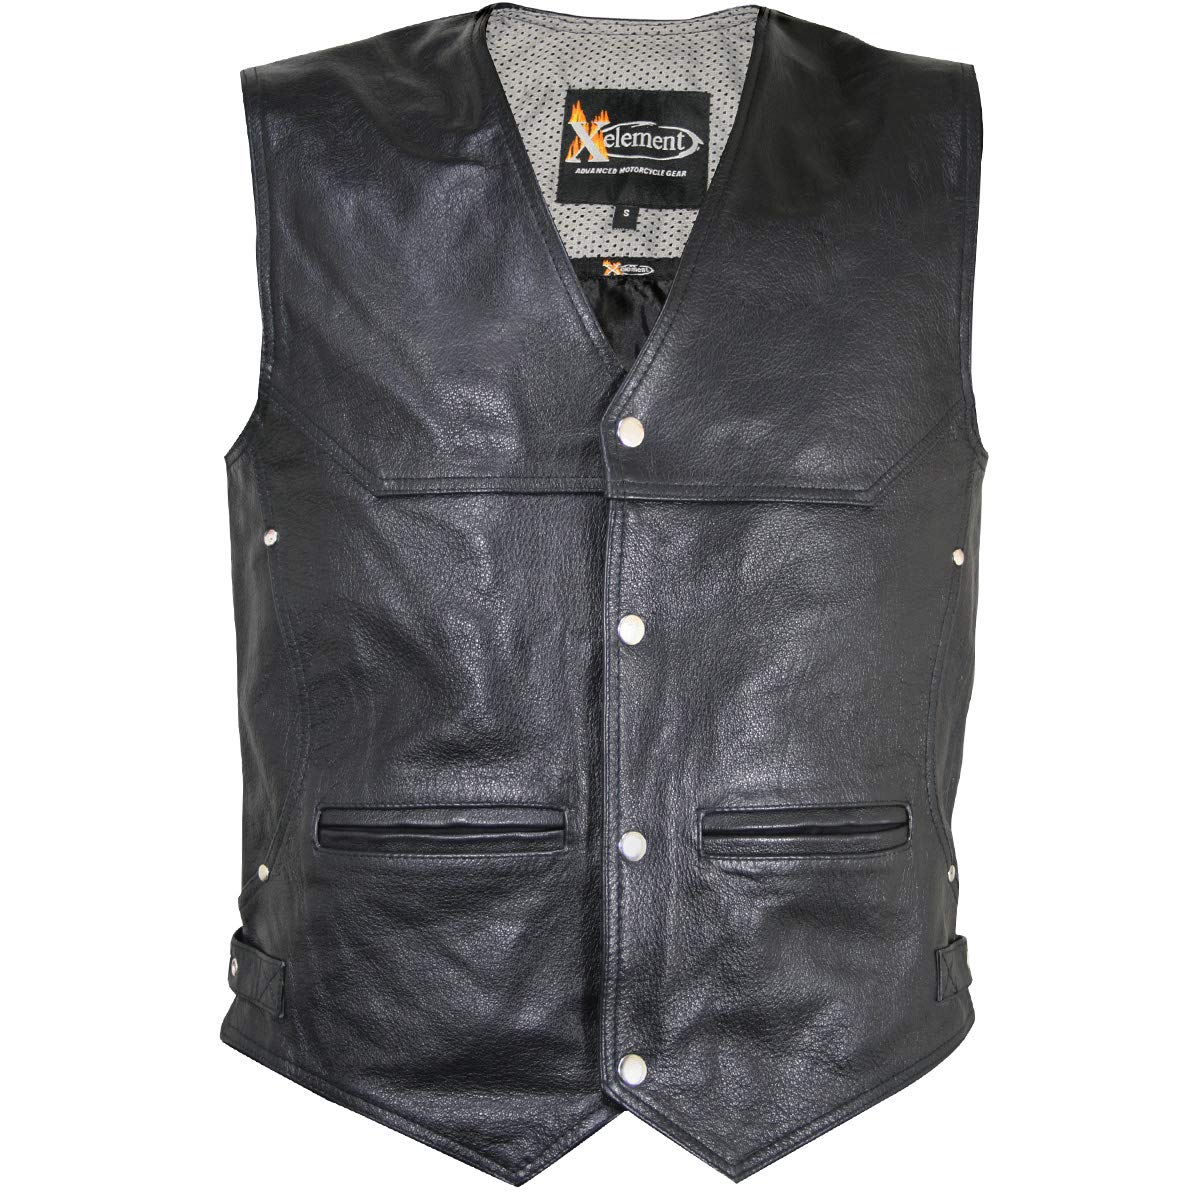 Xelement XS1927 'Road King' Men's Black Leather Biker Vest - Large by Xelement